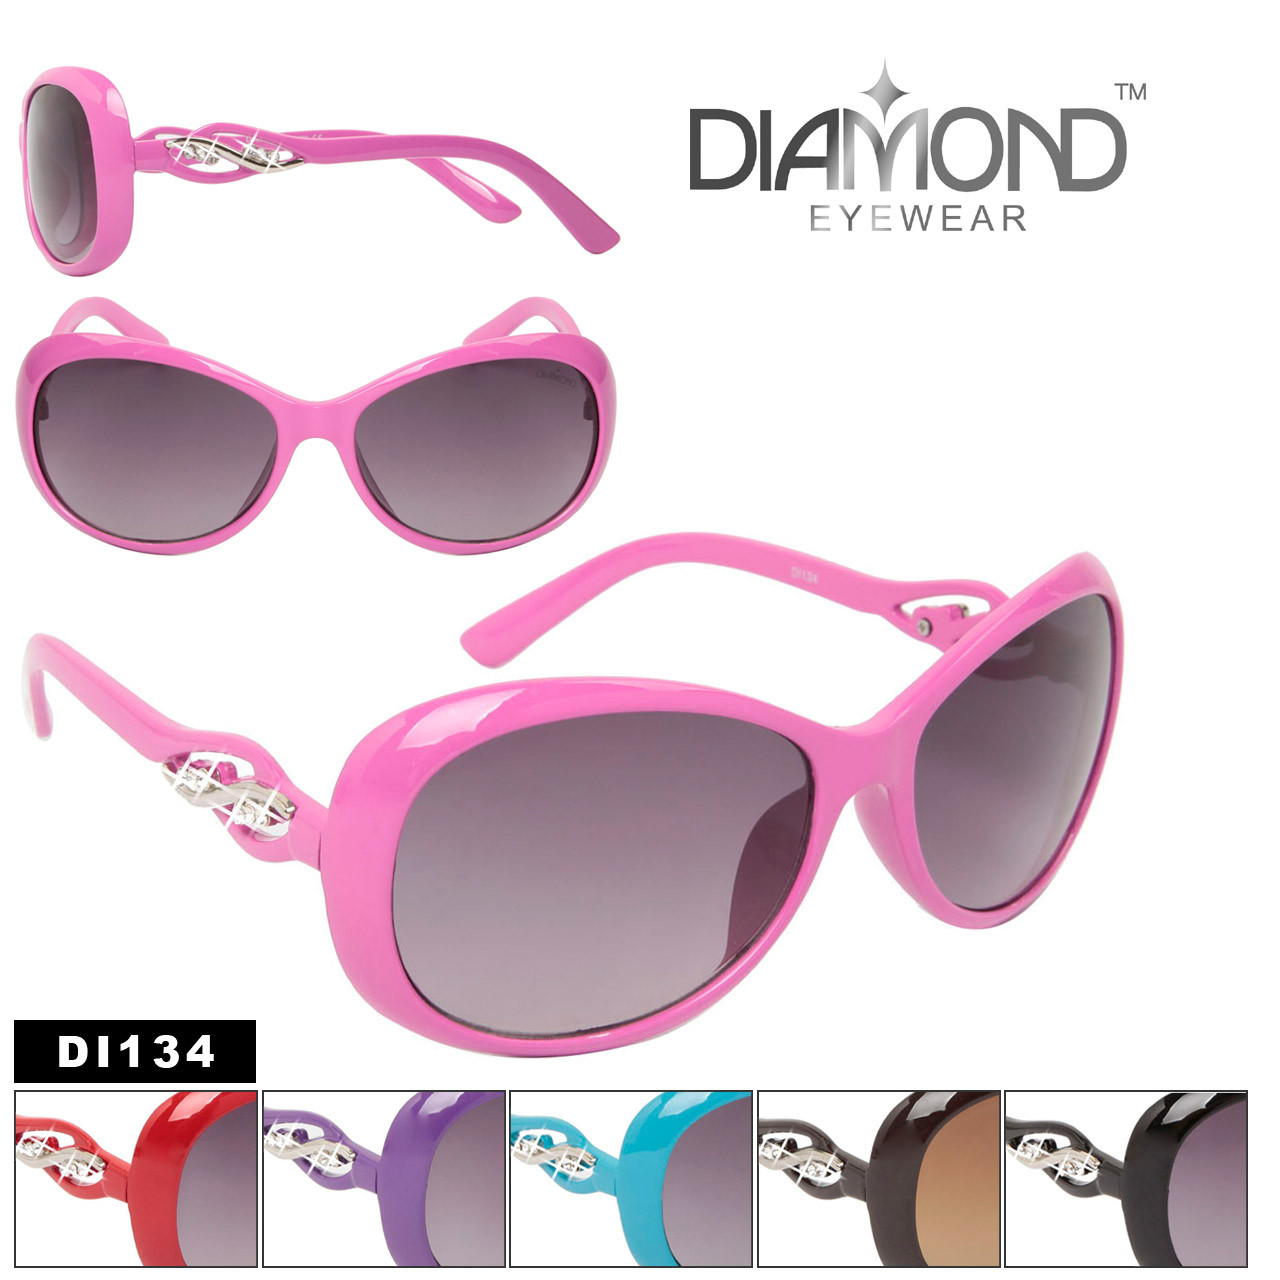 DI134 Diamond Eyewear Sunglasses